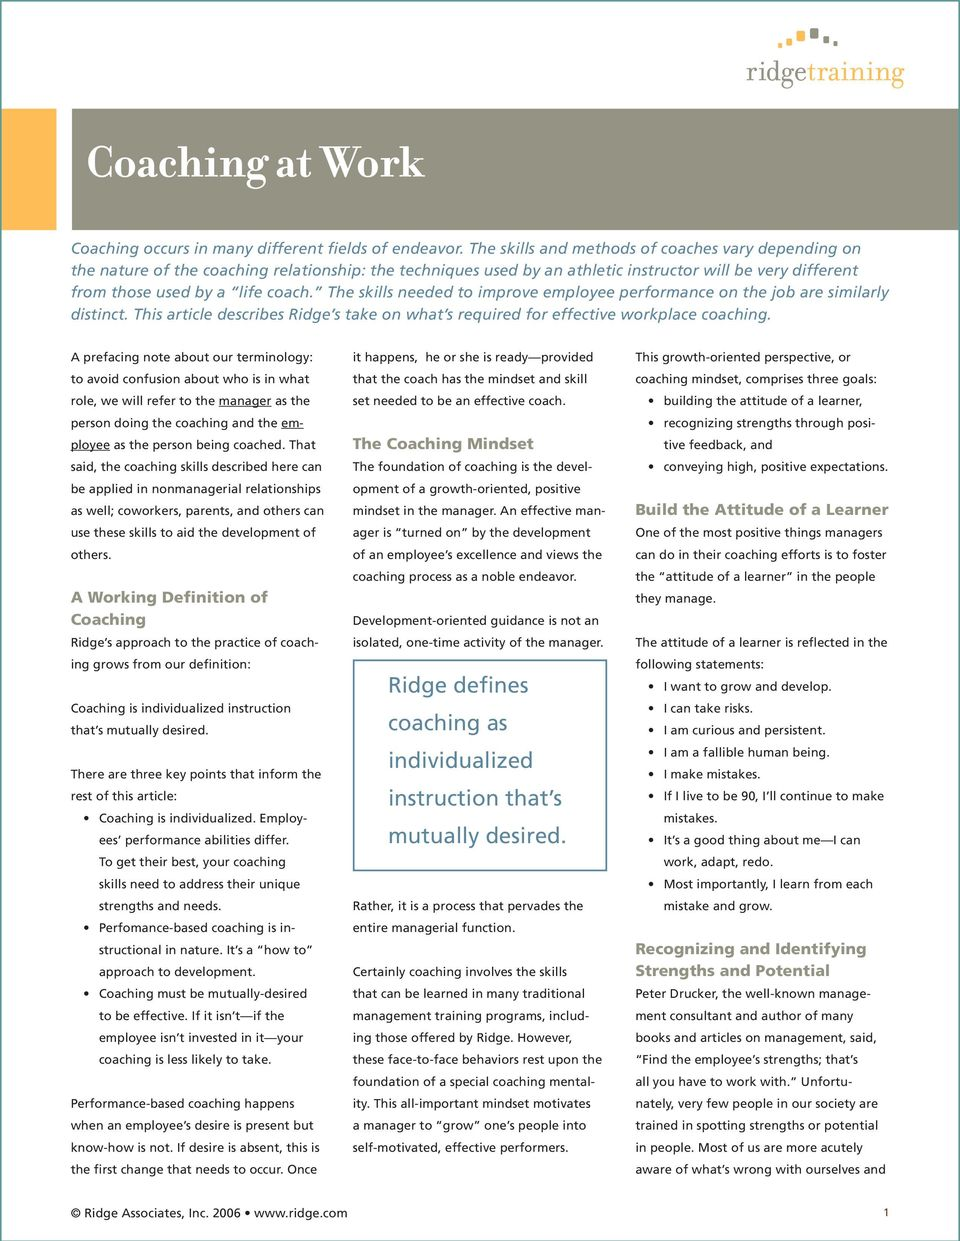 The skills needed to improve employee performance on the job are similarly distinct. This article describes Ridge s take on what s required for effective workplace coaching.